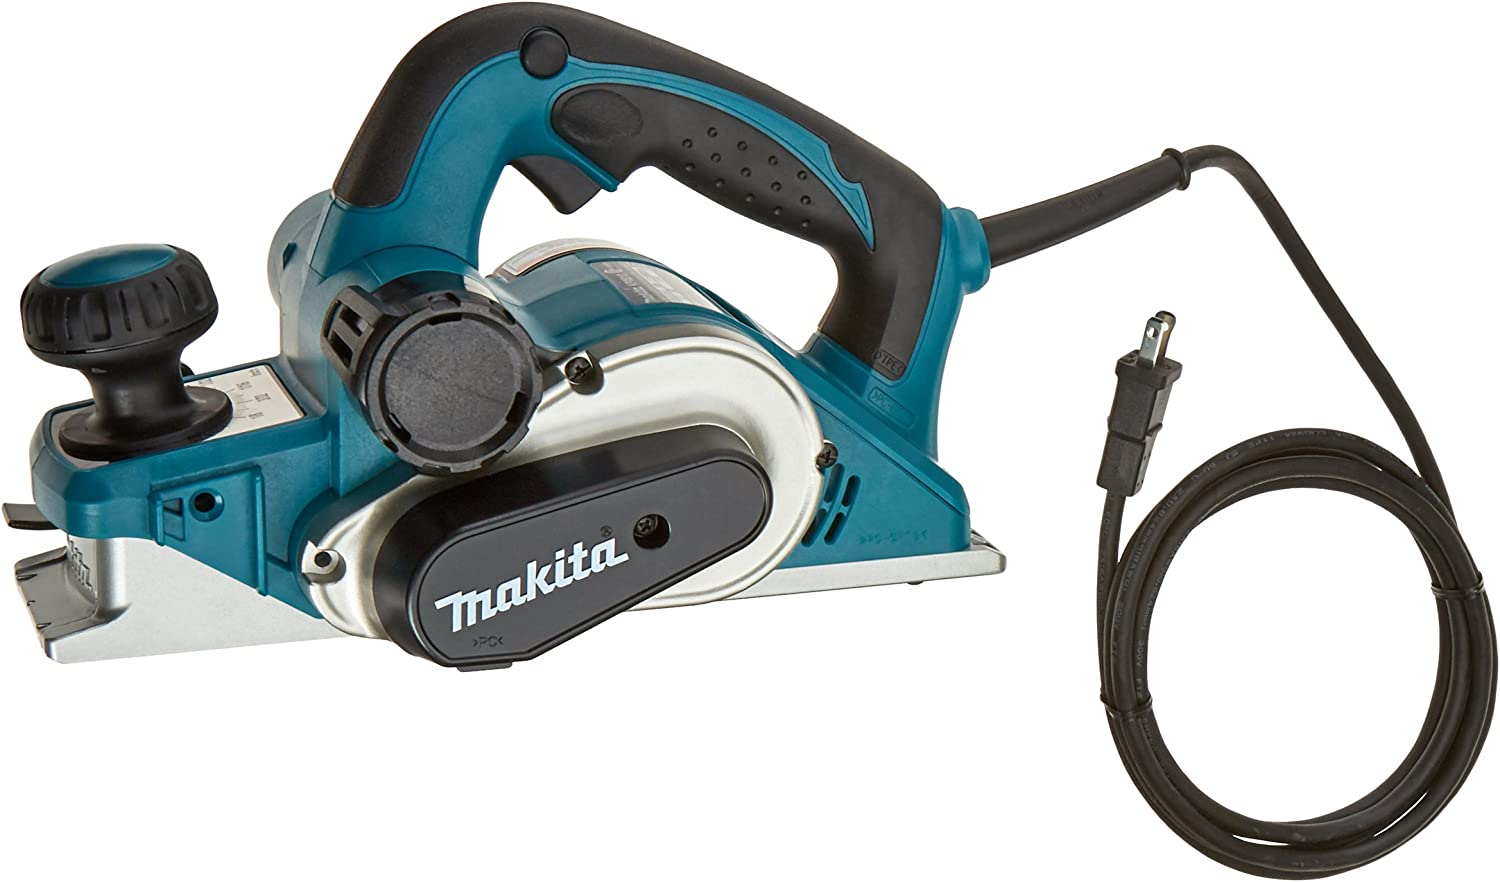 Makita KP0810 Electric Hand Planers product image 1